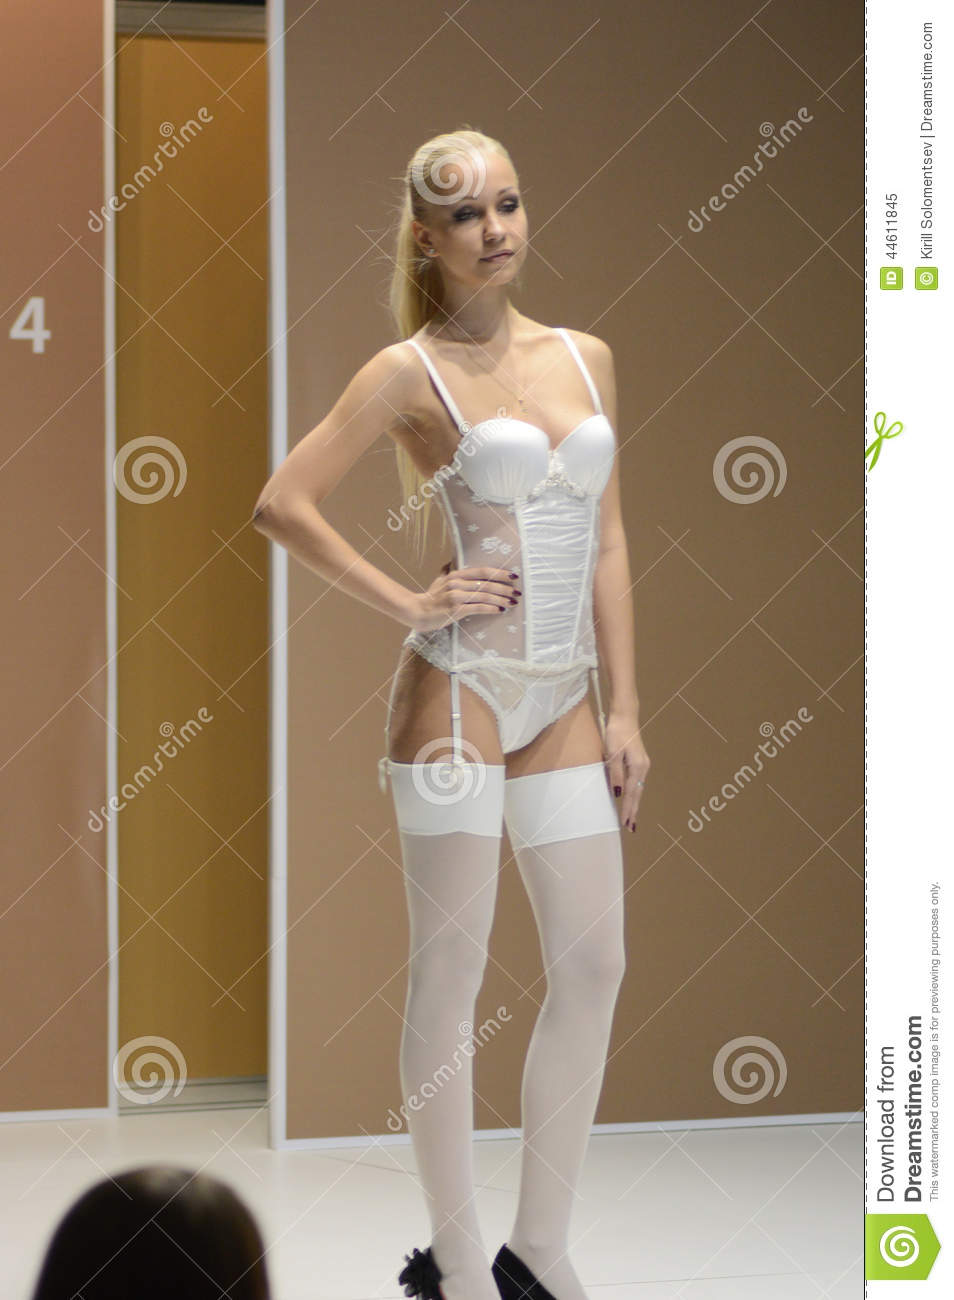 247ac4090 Moscow Lingrie Expo Fashion Show Young Woman In White Stockings And ...